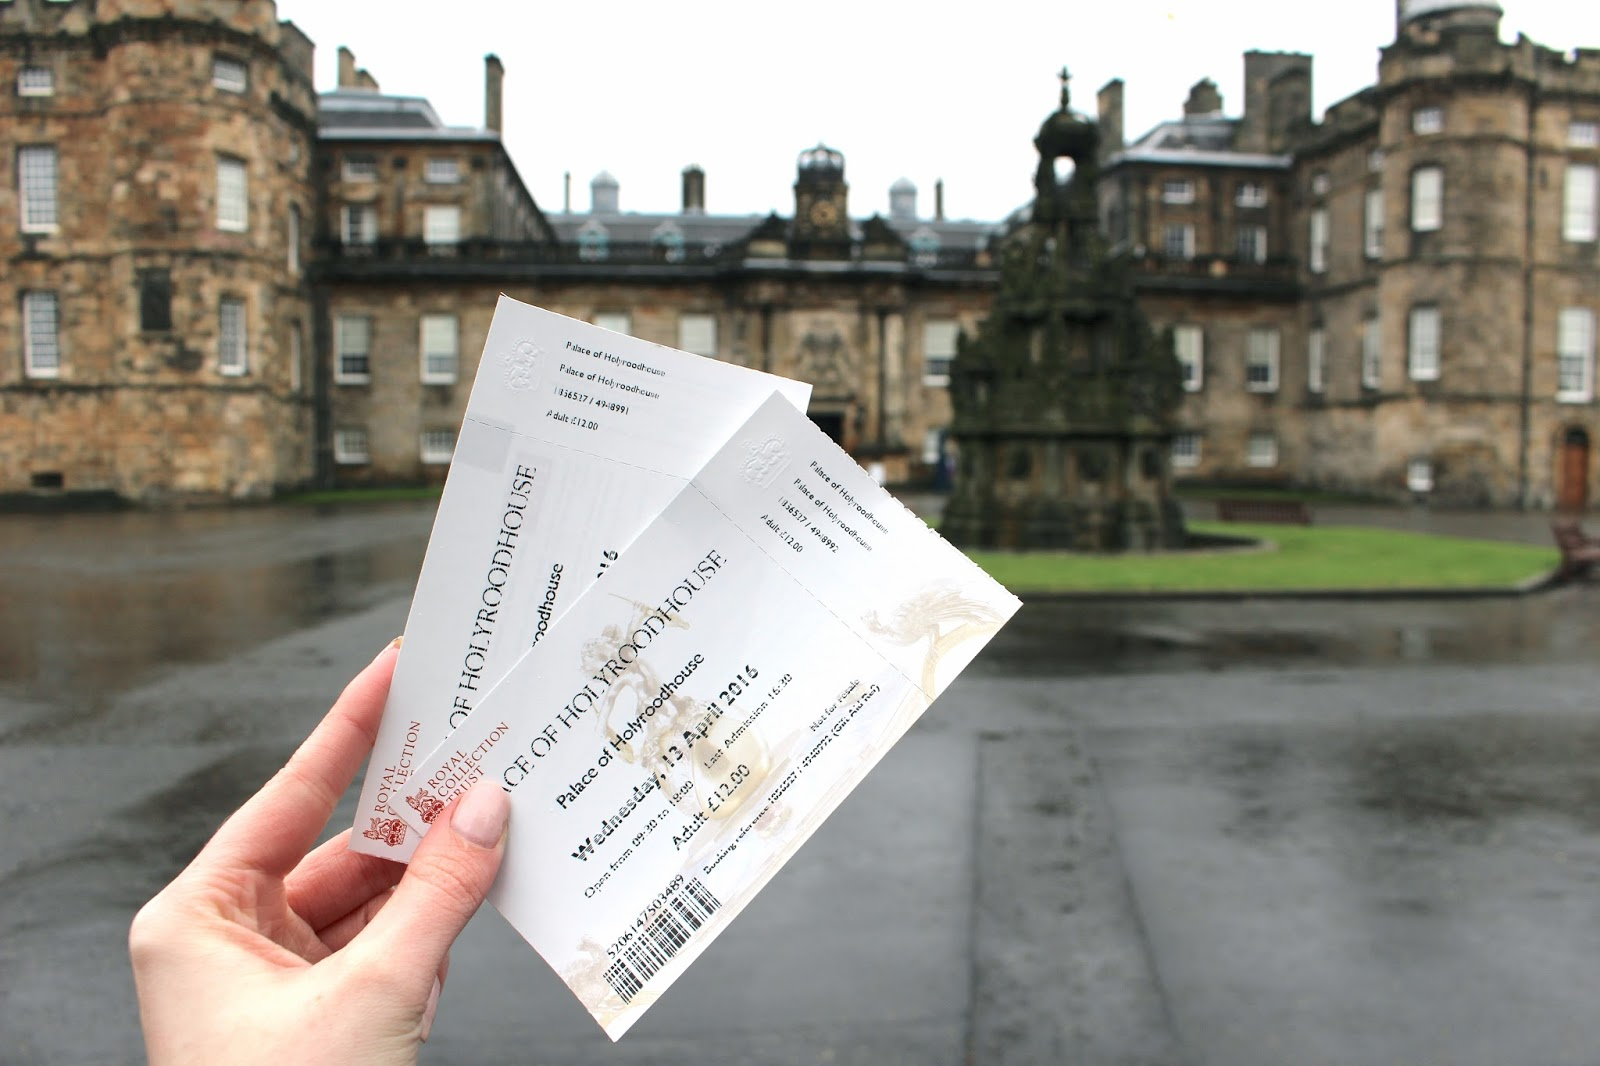 Holyrood Palace travel blog review